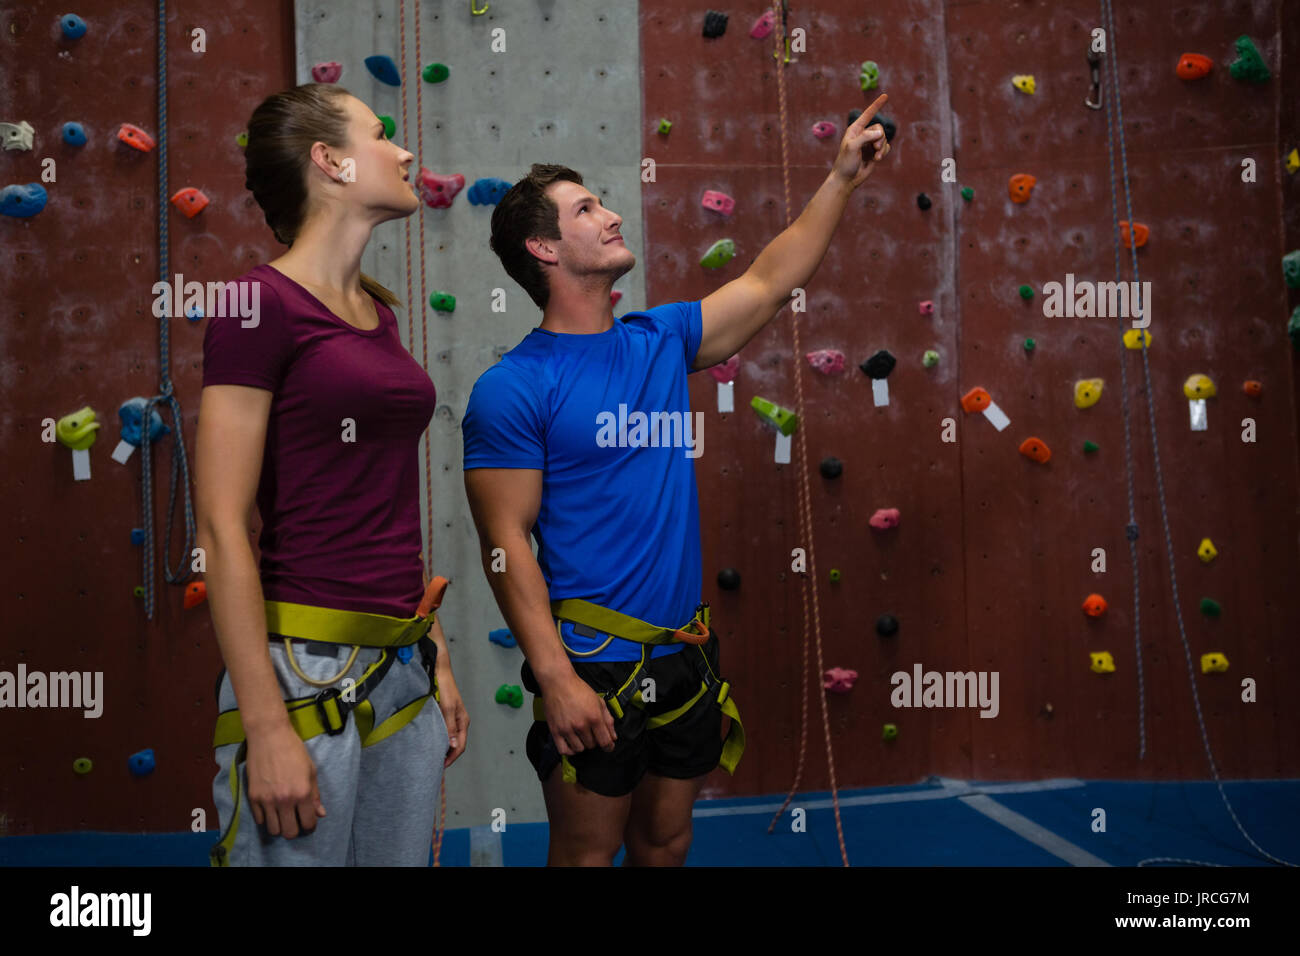 Male trainer guiding athlete in climbing wall at gym - Stock Image